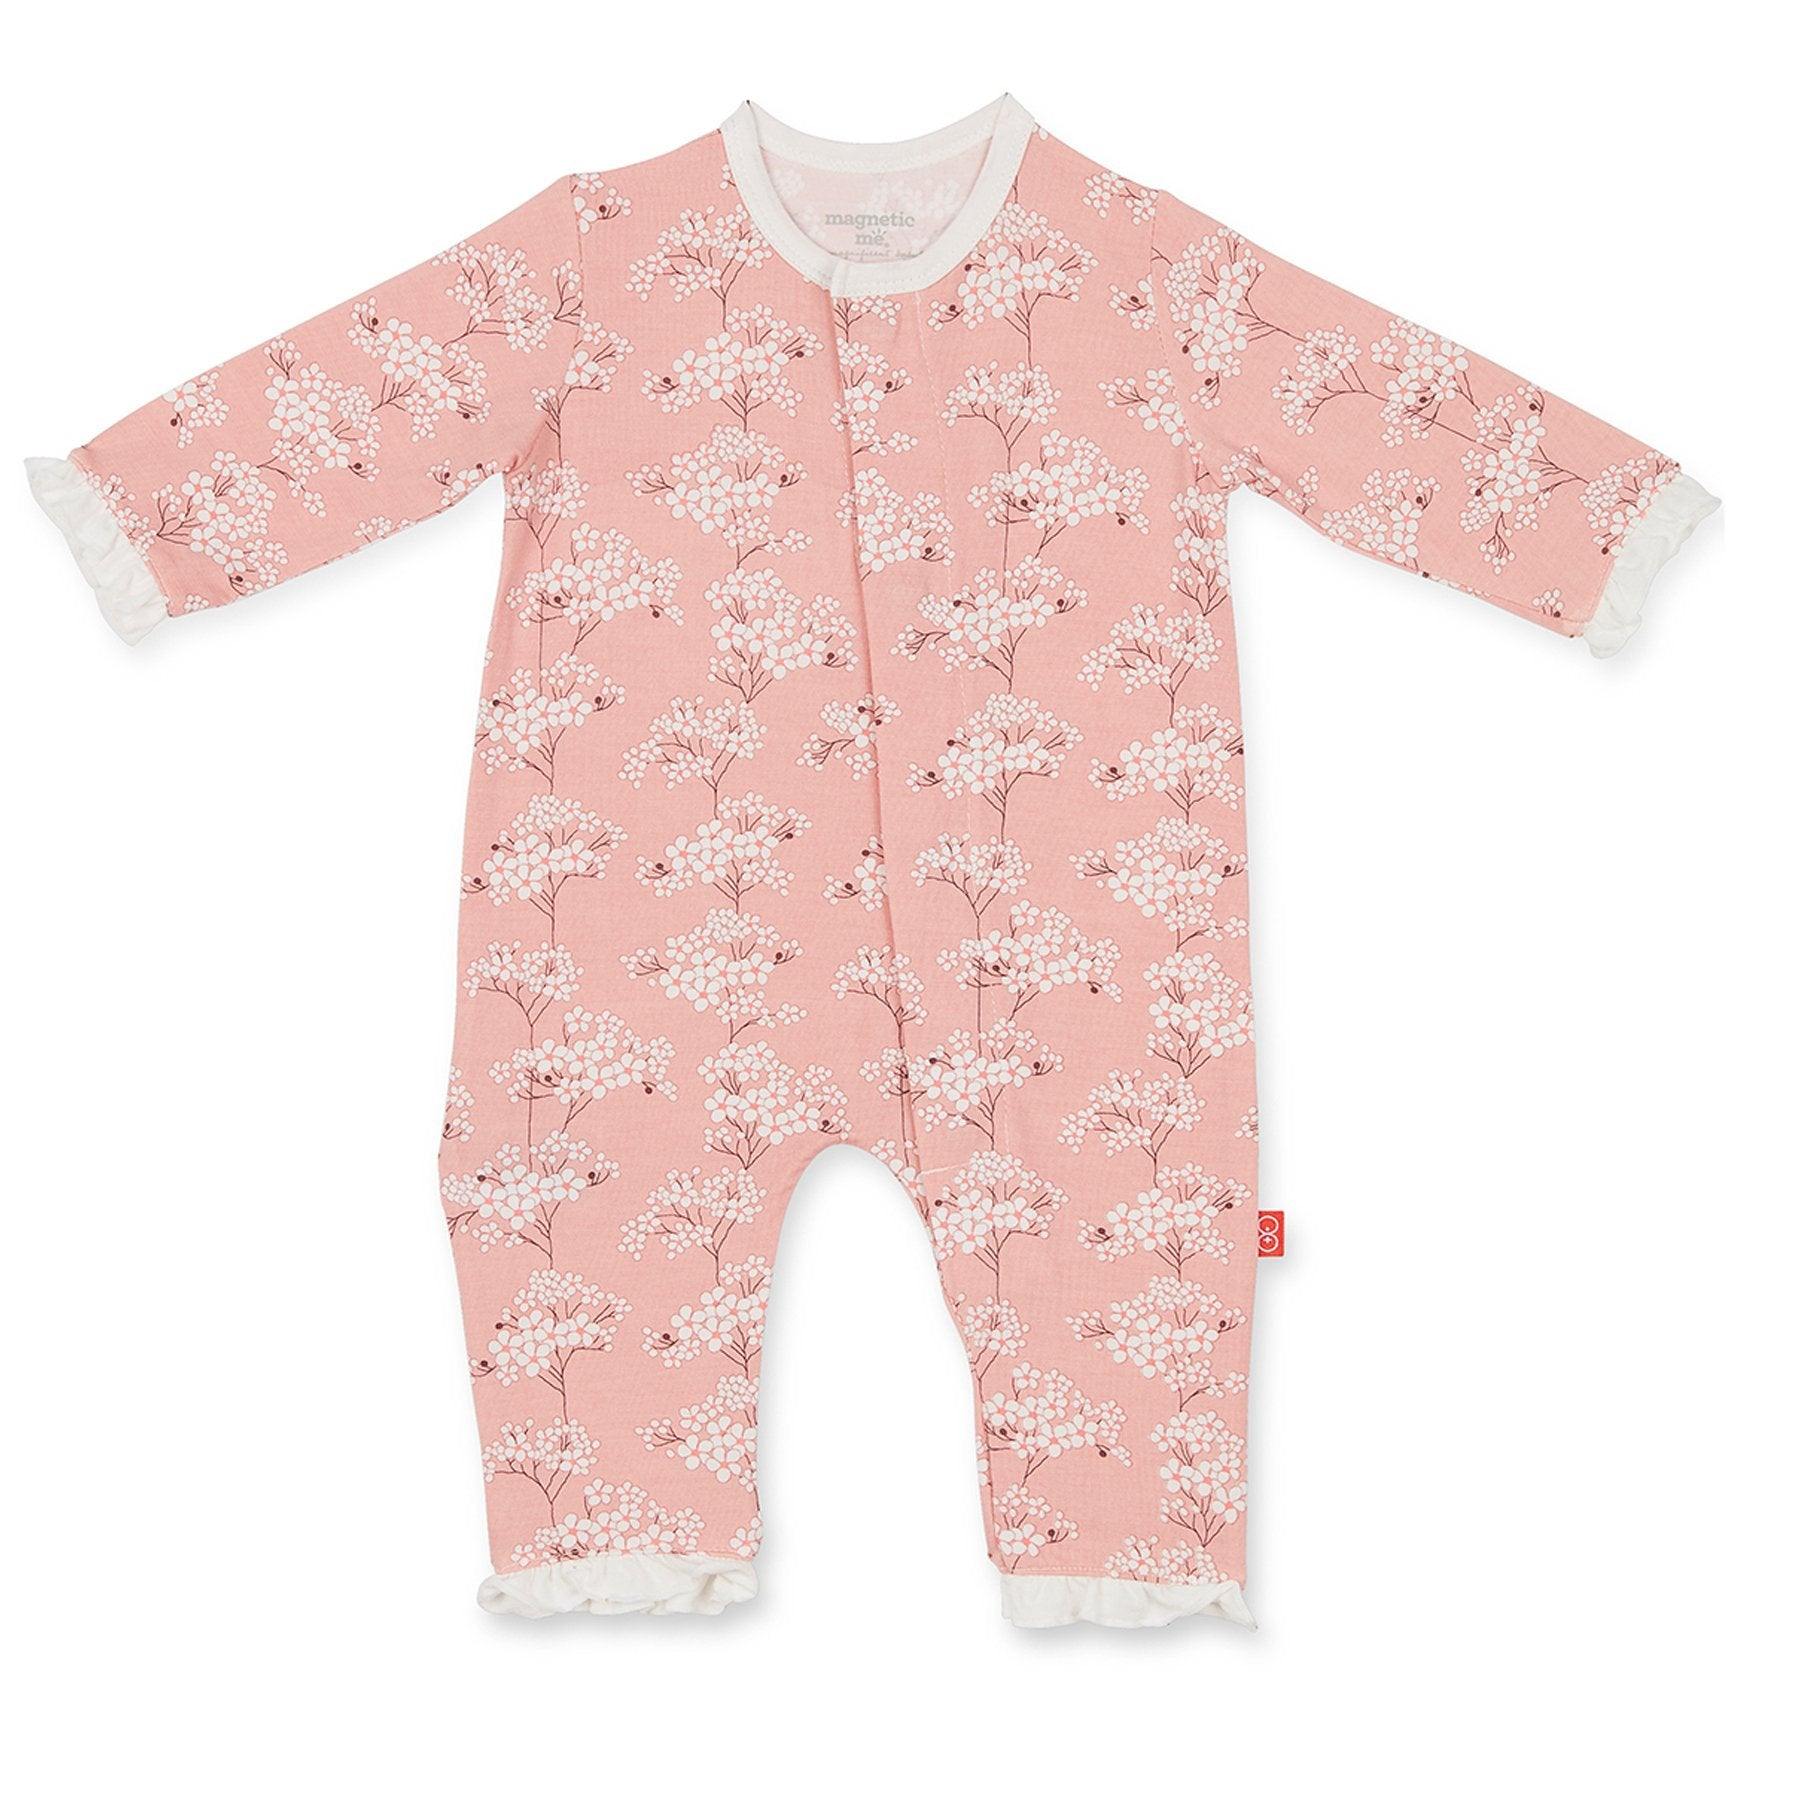 Magnetic Me Cherry Blossom Magnetic Overall - Noa & Vivi Kids Apparel